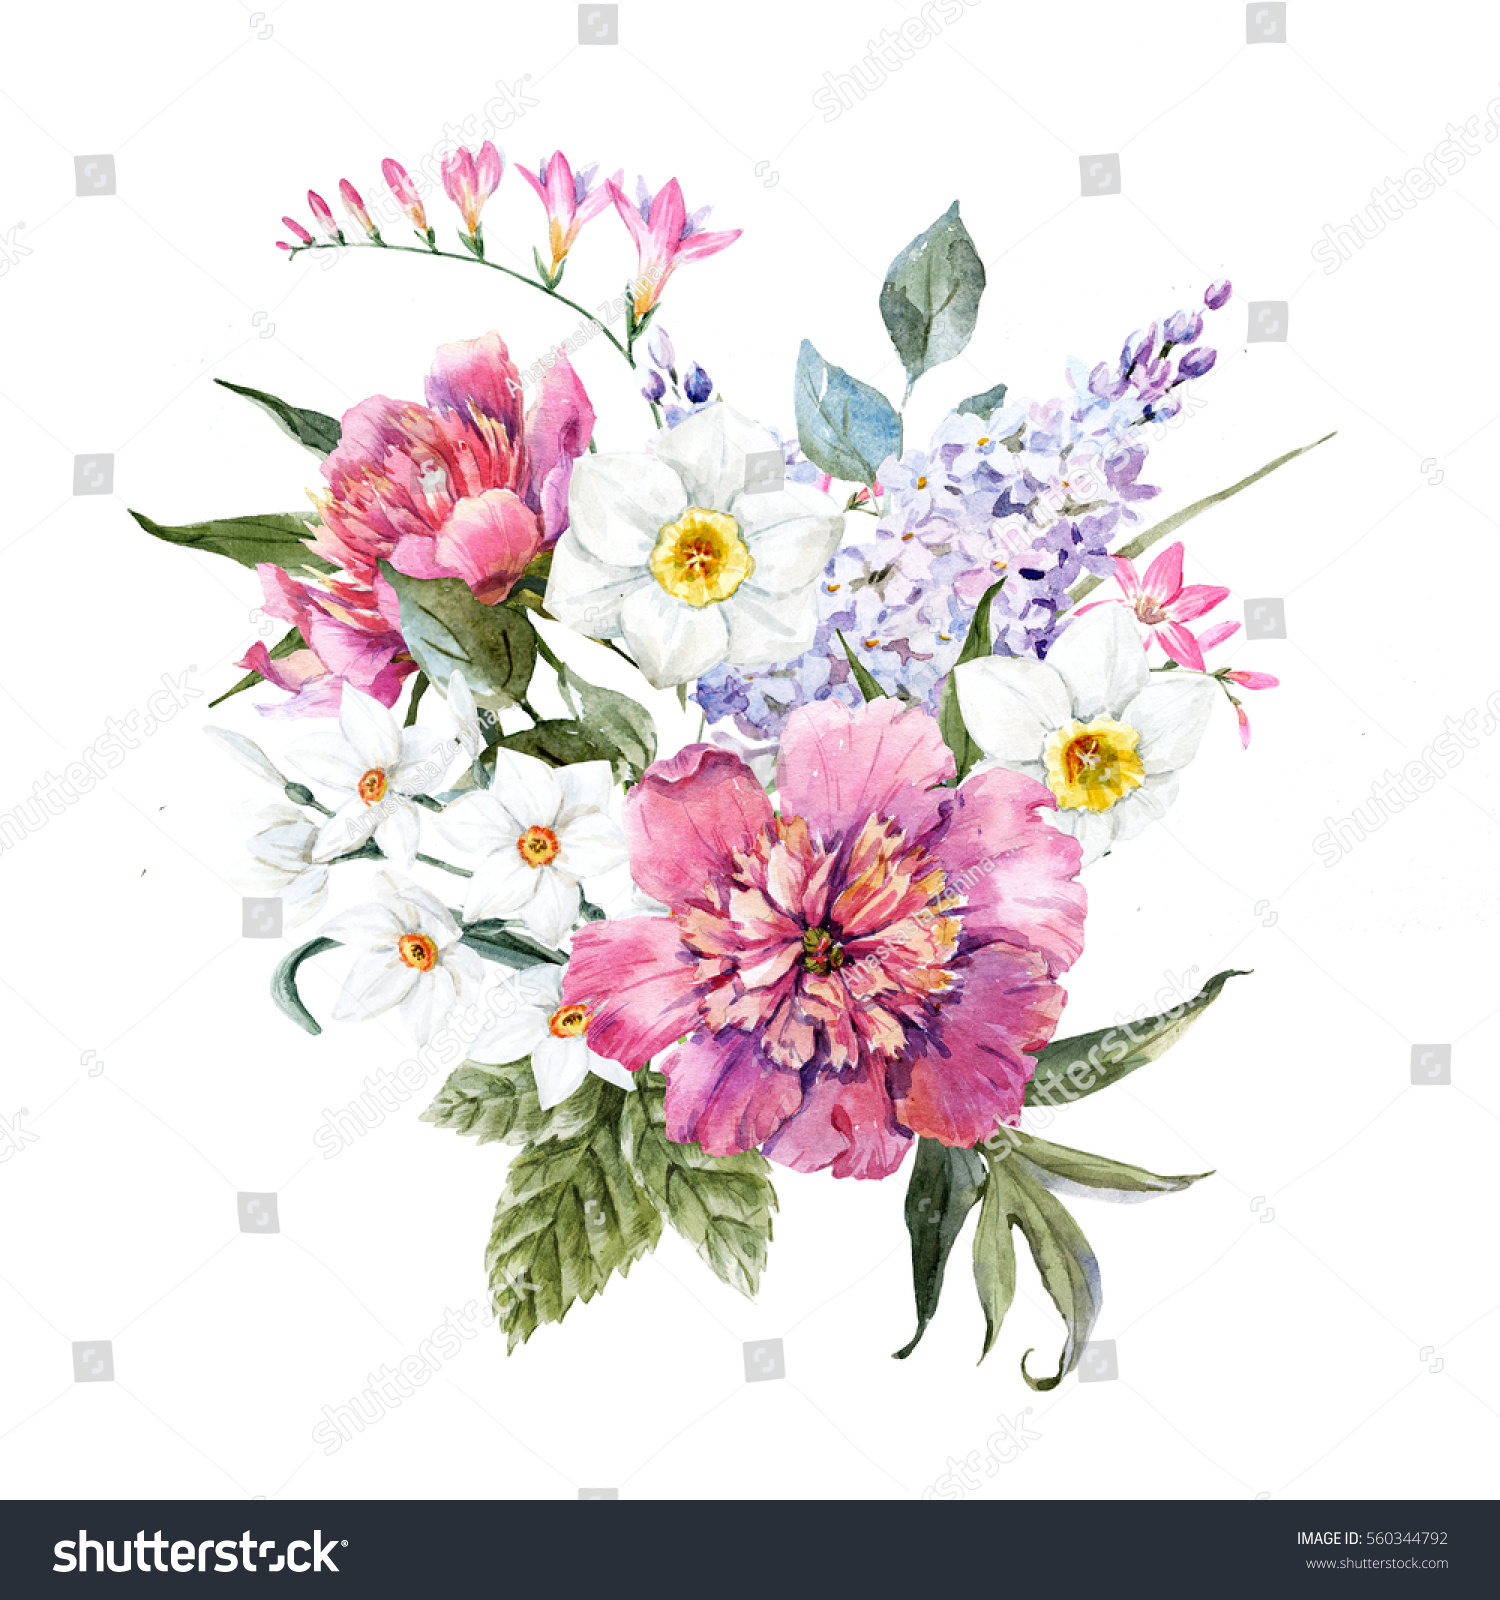 watercolor illustration spring floral bouquet white stock